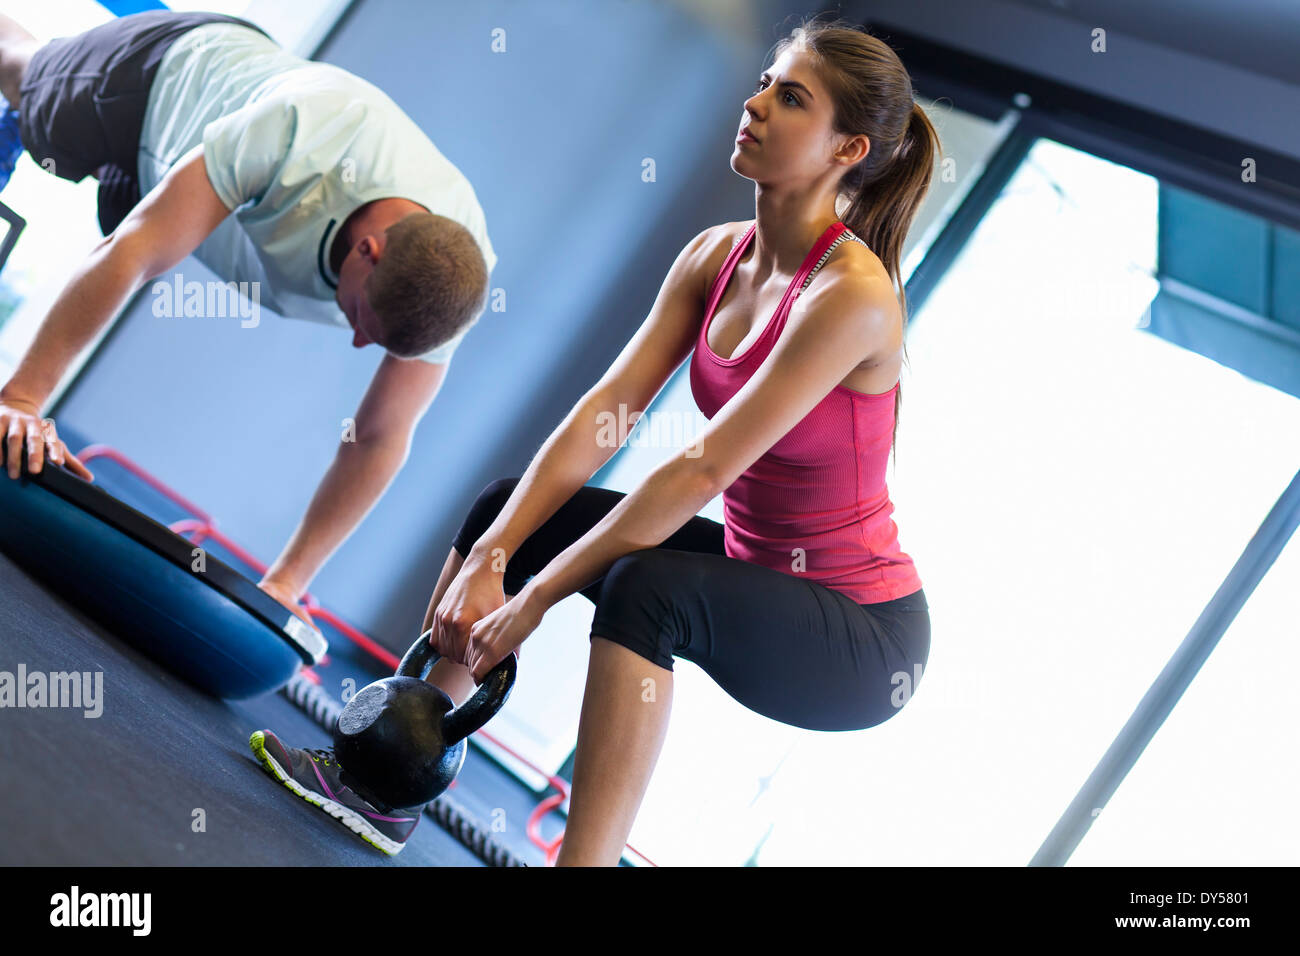 Couple working out in gym Photo Stock